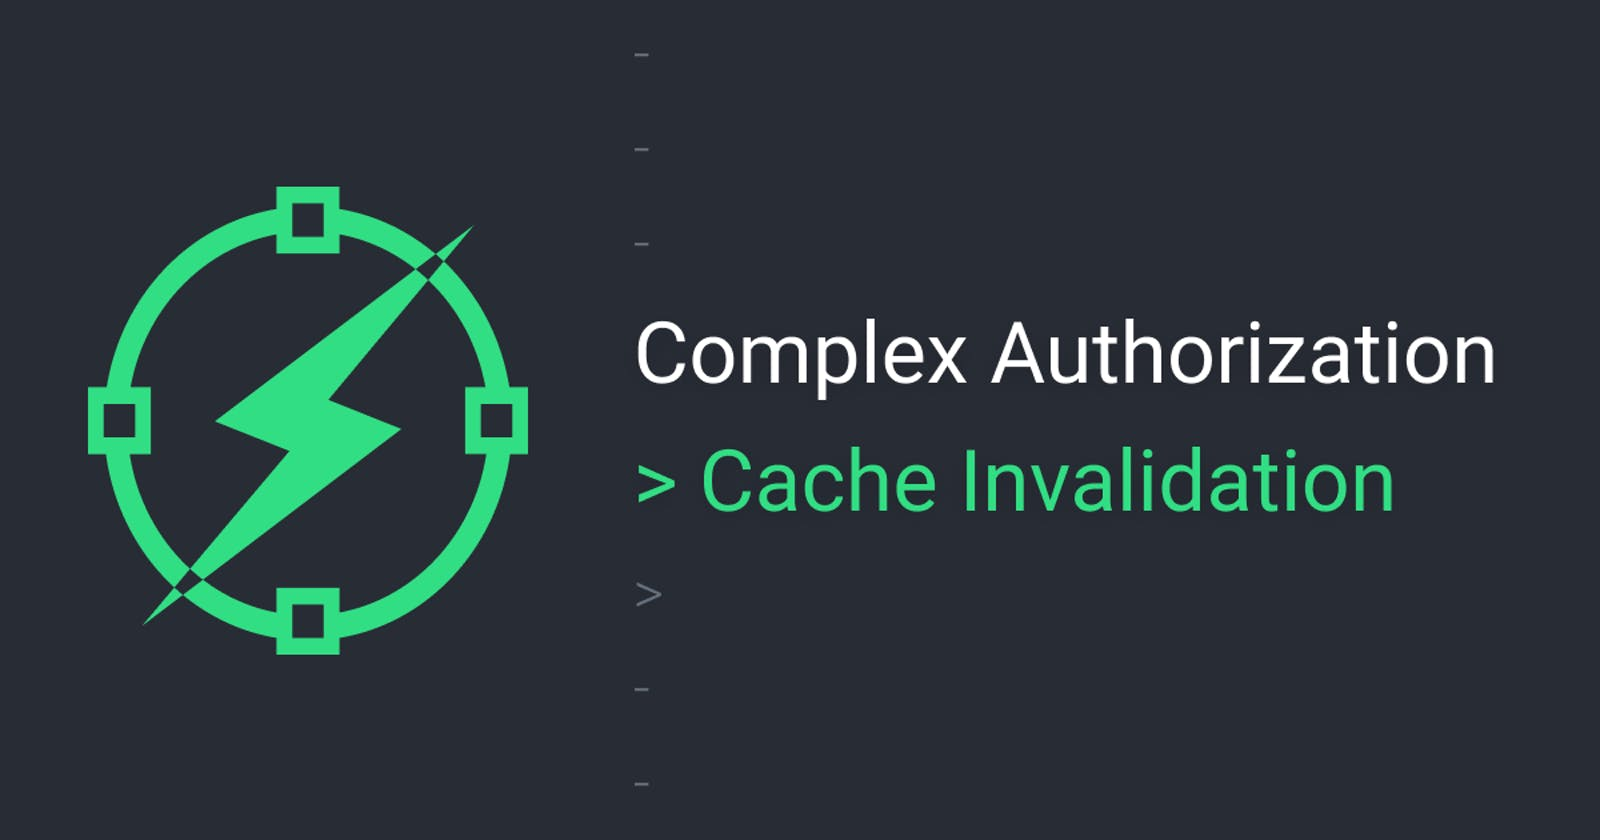 Complex auth - the biggest issue: cache invalidation